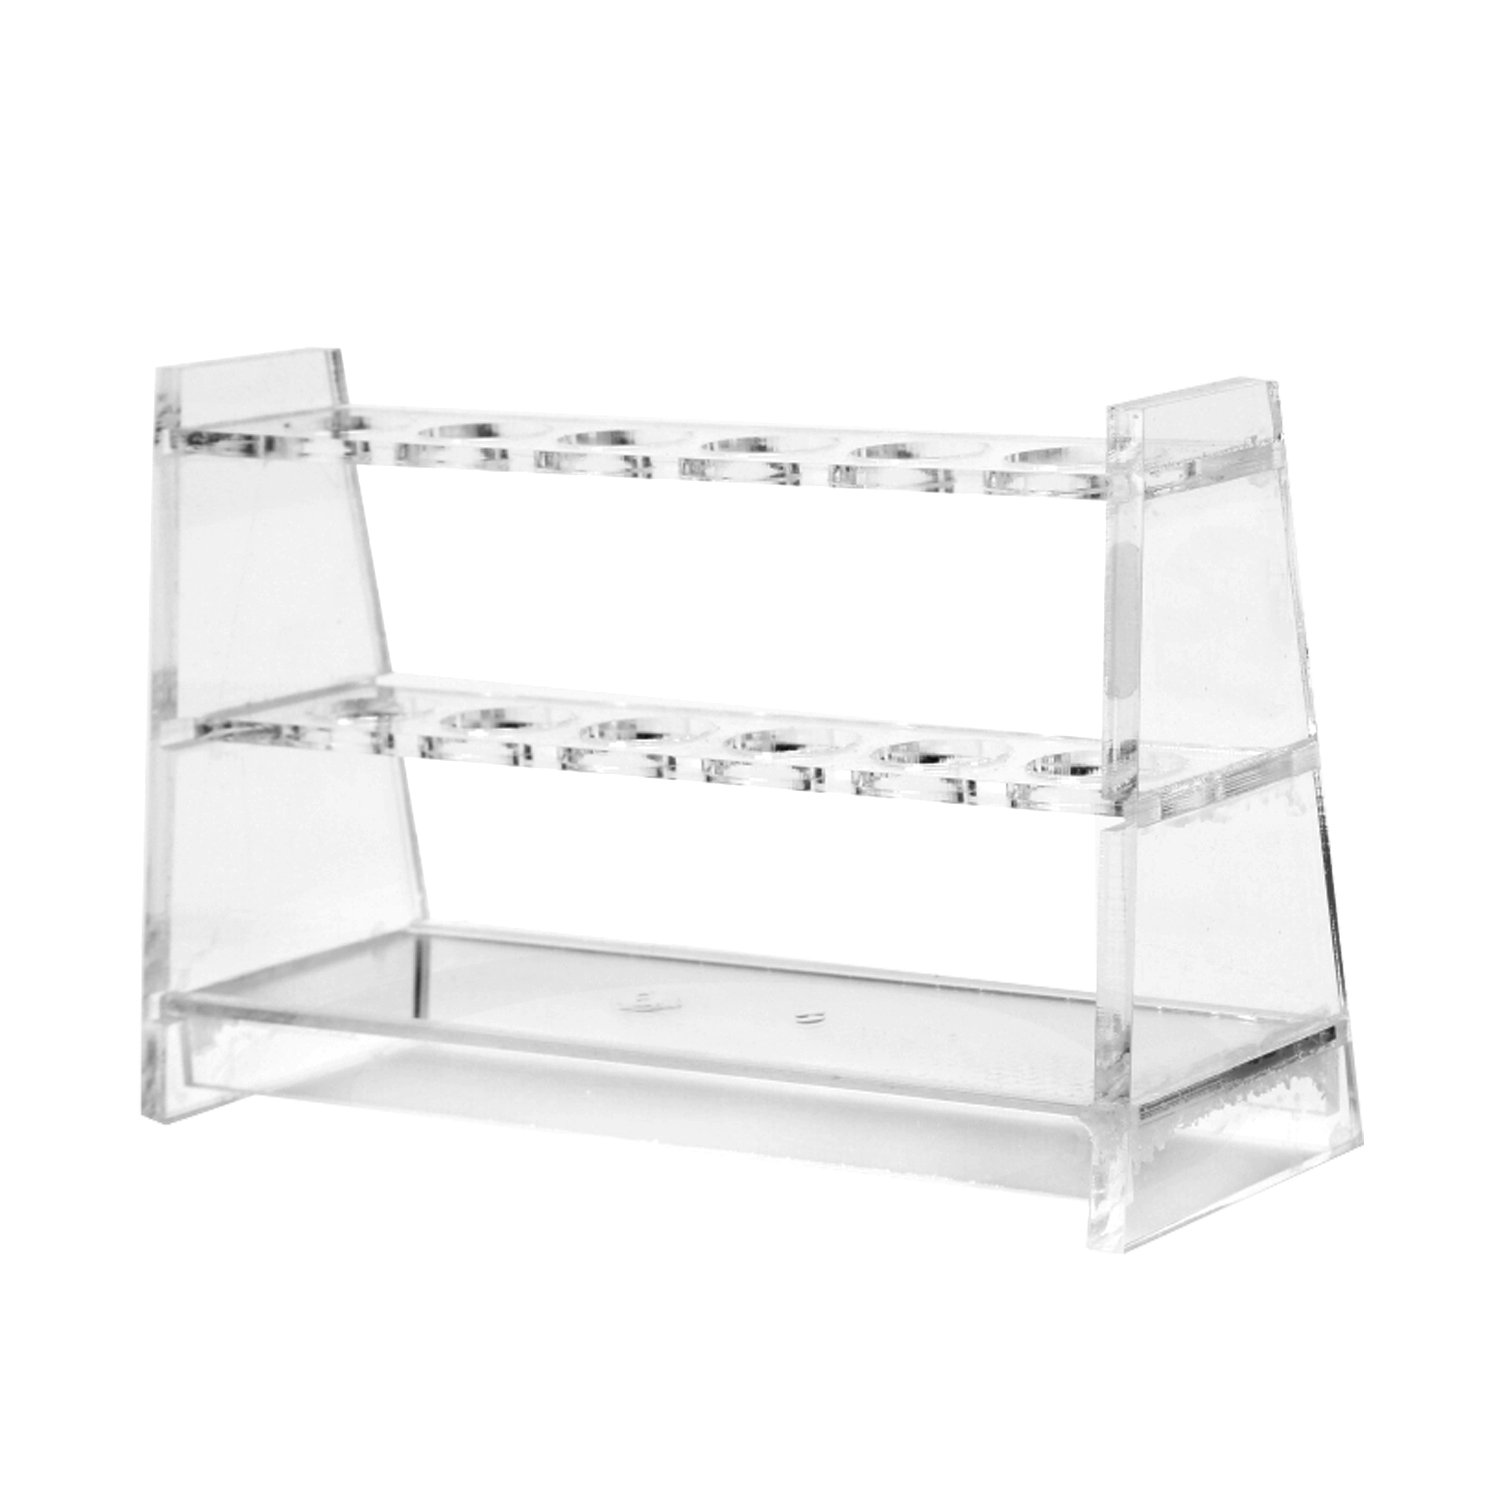 25ML Colorimeter Tube Rack Acrylic Strong Test Tube Holder 6 Slots Suit for Tubes Less Than 2.1cm/0.83inch in Diameter Burry Life Science